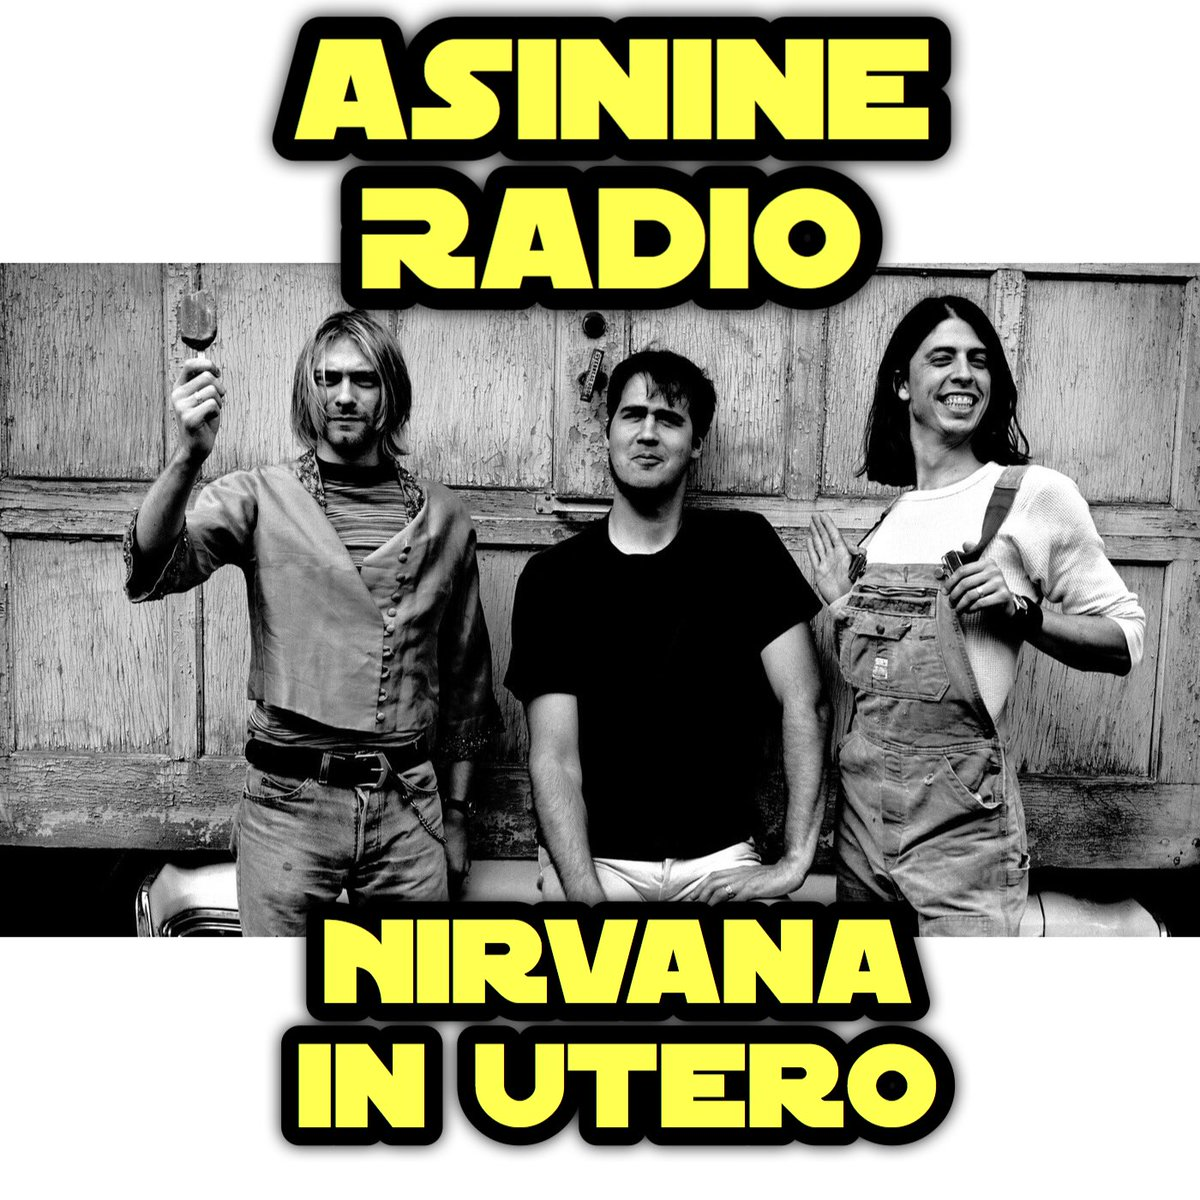 New episode, and we really get into it. Listen anywhere you consume podcasts.   #nirvana #inutero #kurtcobain #davegrohl #kristnovoselic #grunge #music #podcast #musicpodcast #asinineradio<br>http://pic.twitter.com/HxOKERZU8d